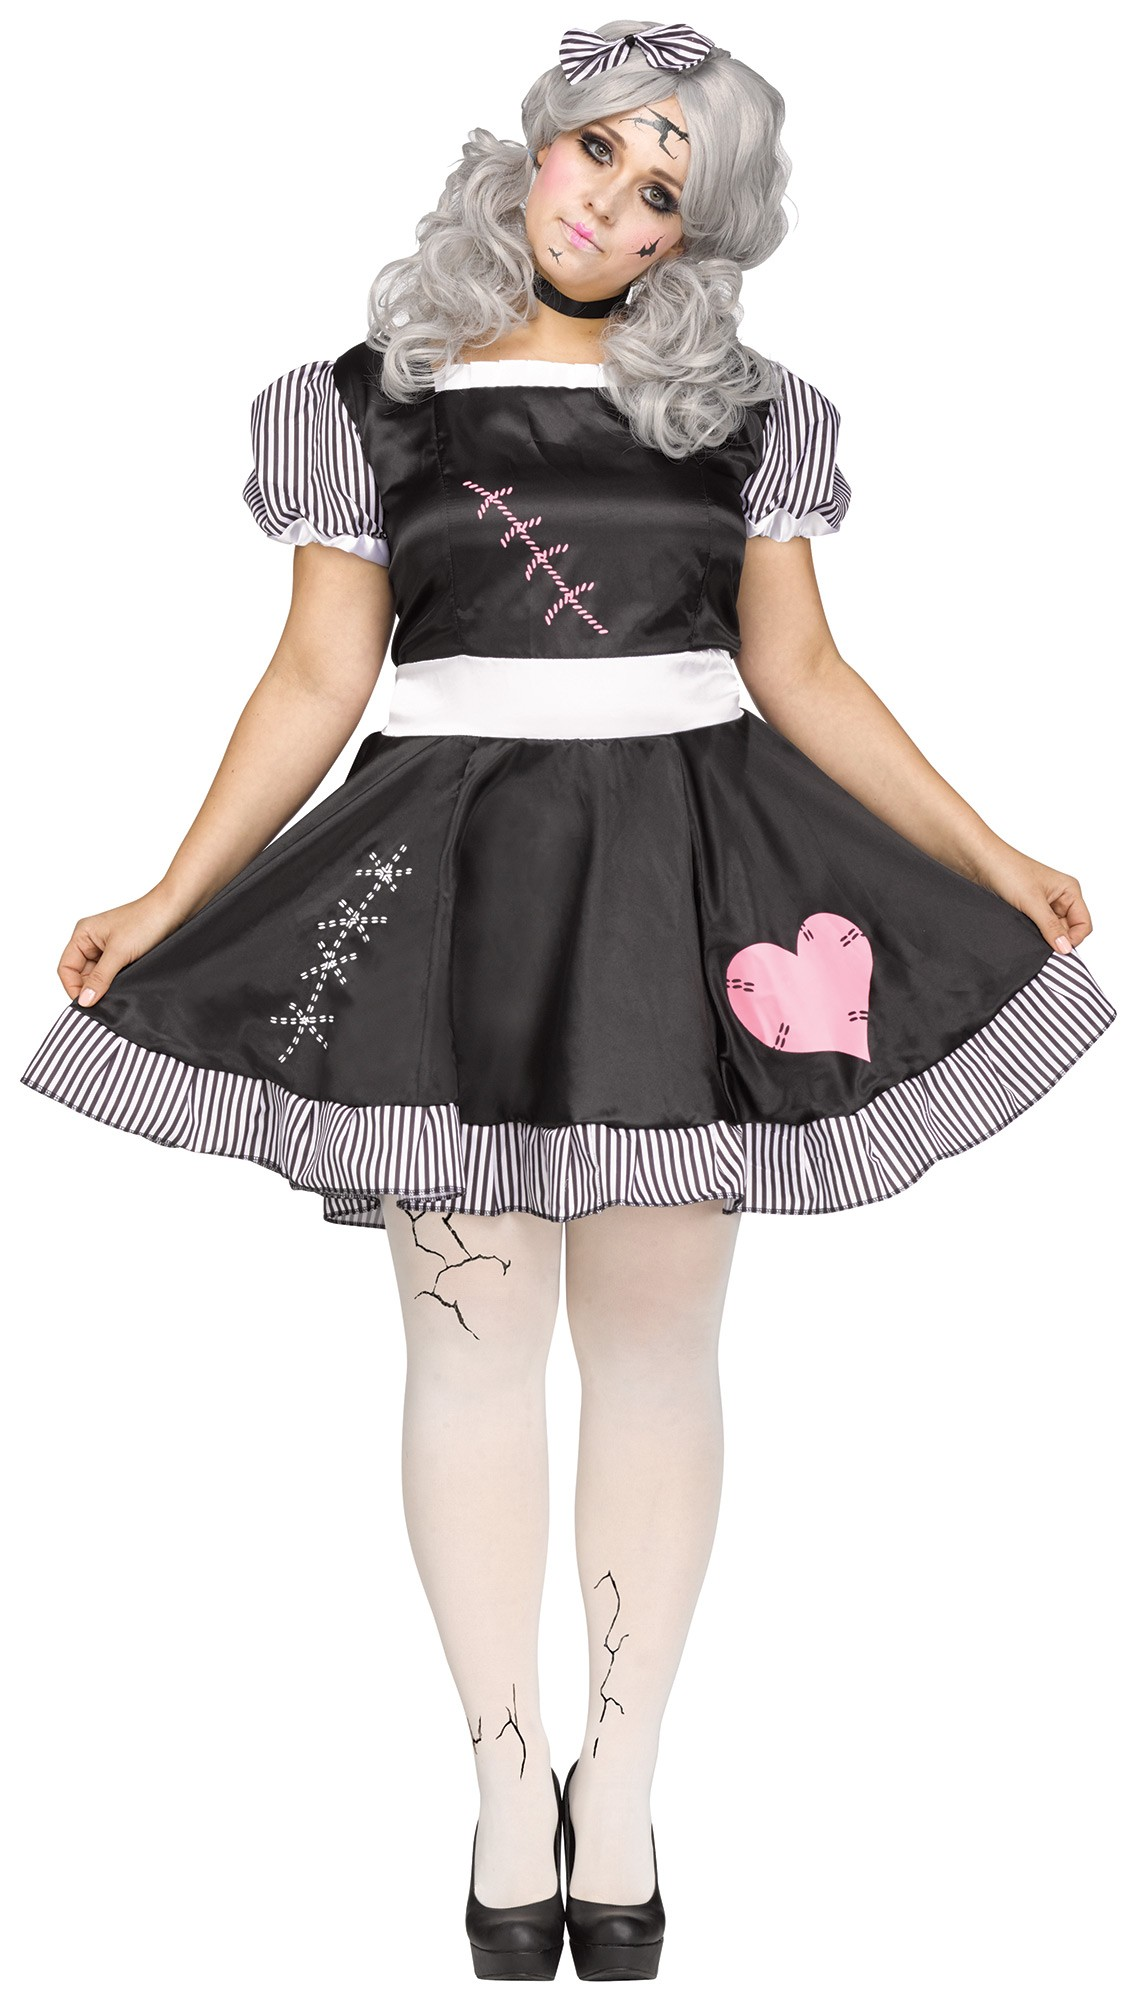 Broken Doll Ladies Plus Size Costume All Ladies Halloween Costumes